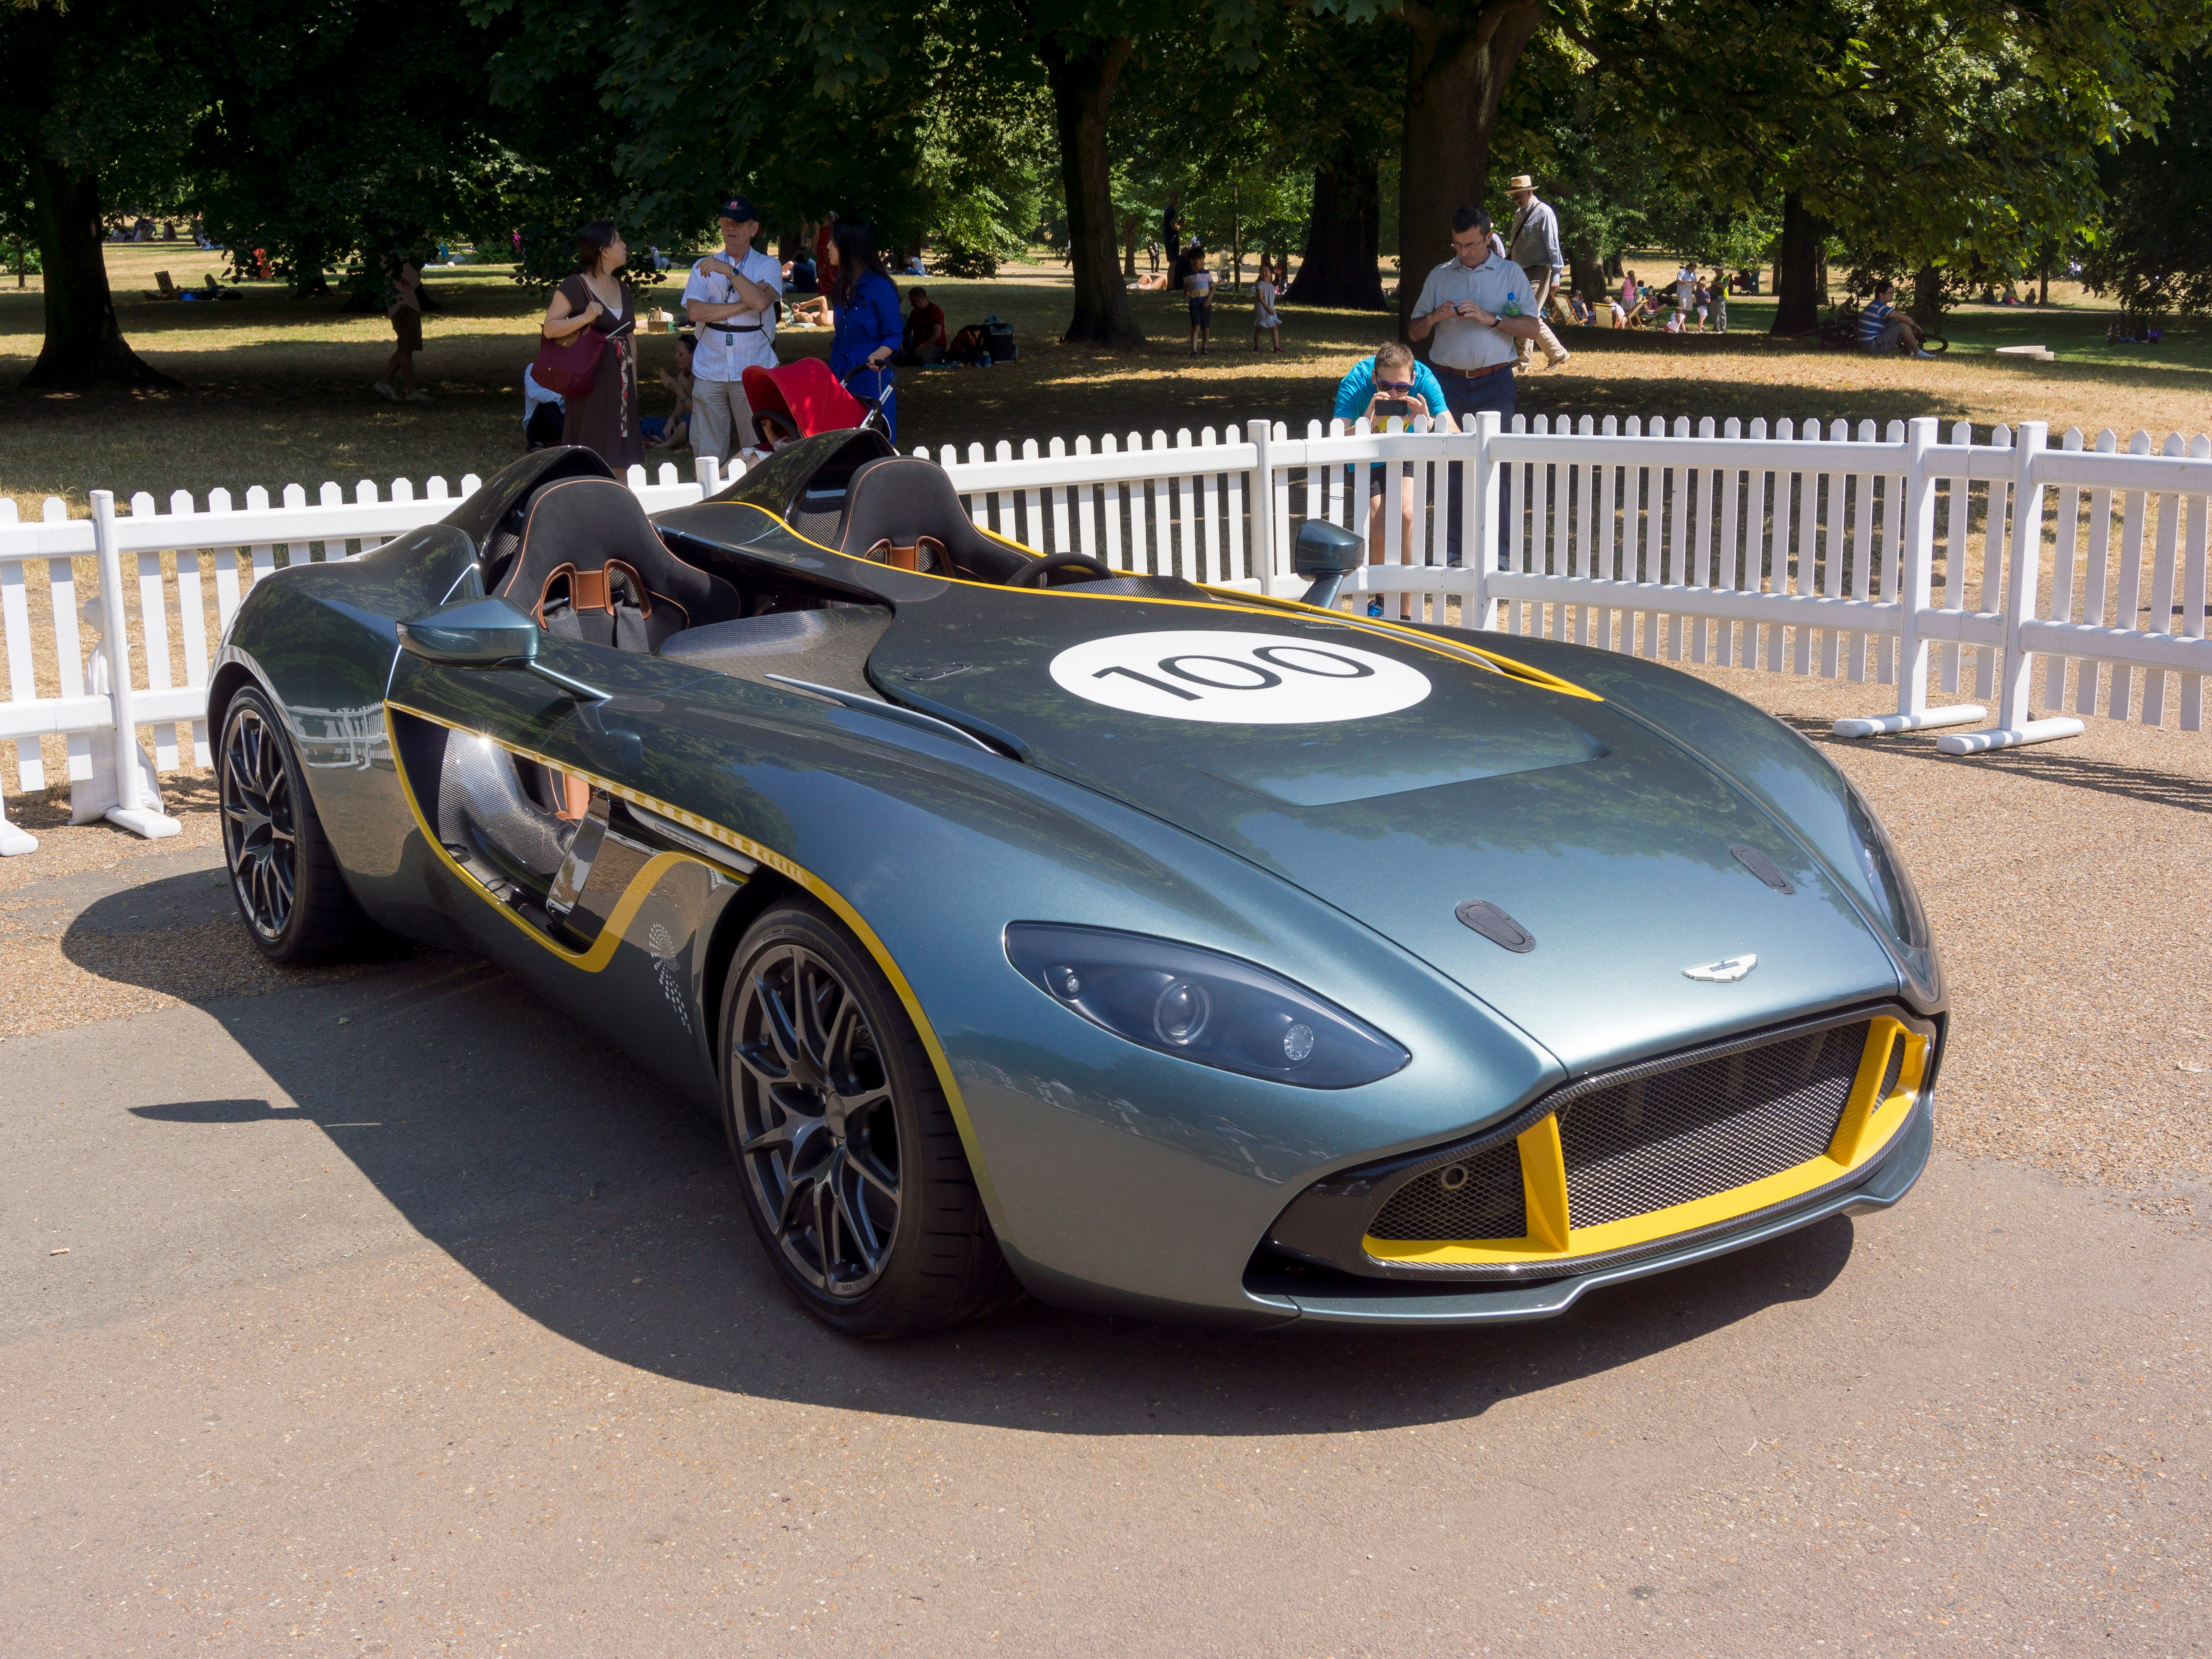 An Aston Martin CC100 SPEEDSTER CONCEPT (2013) is on display Kensington Park in London.